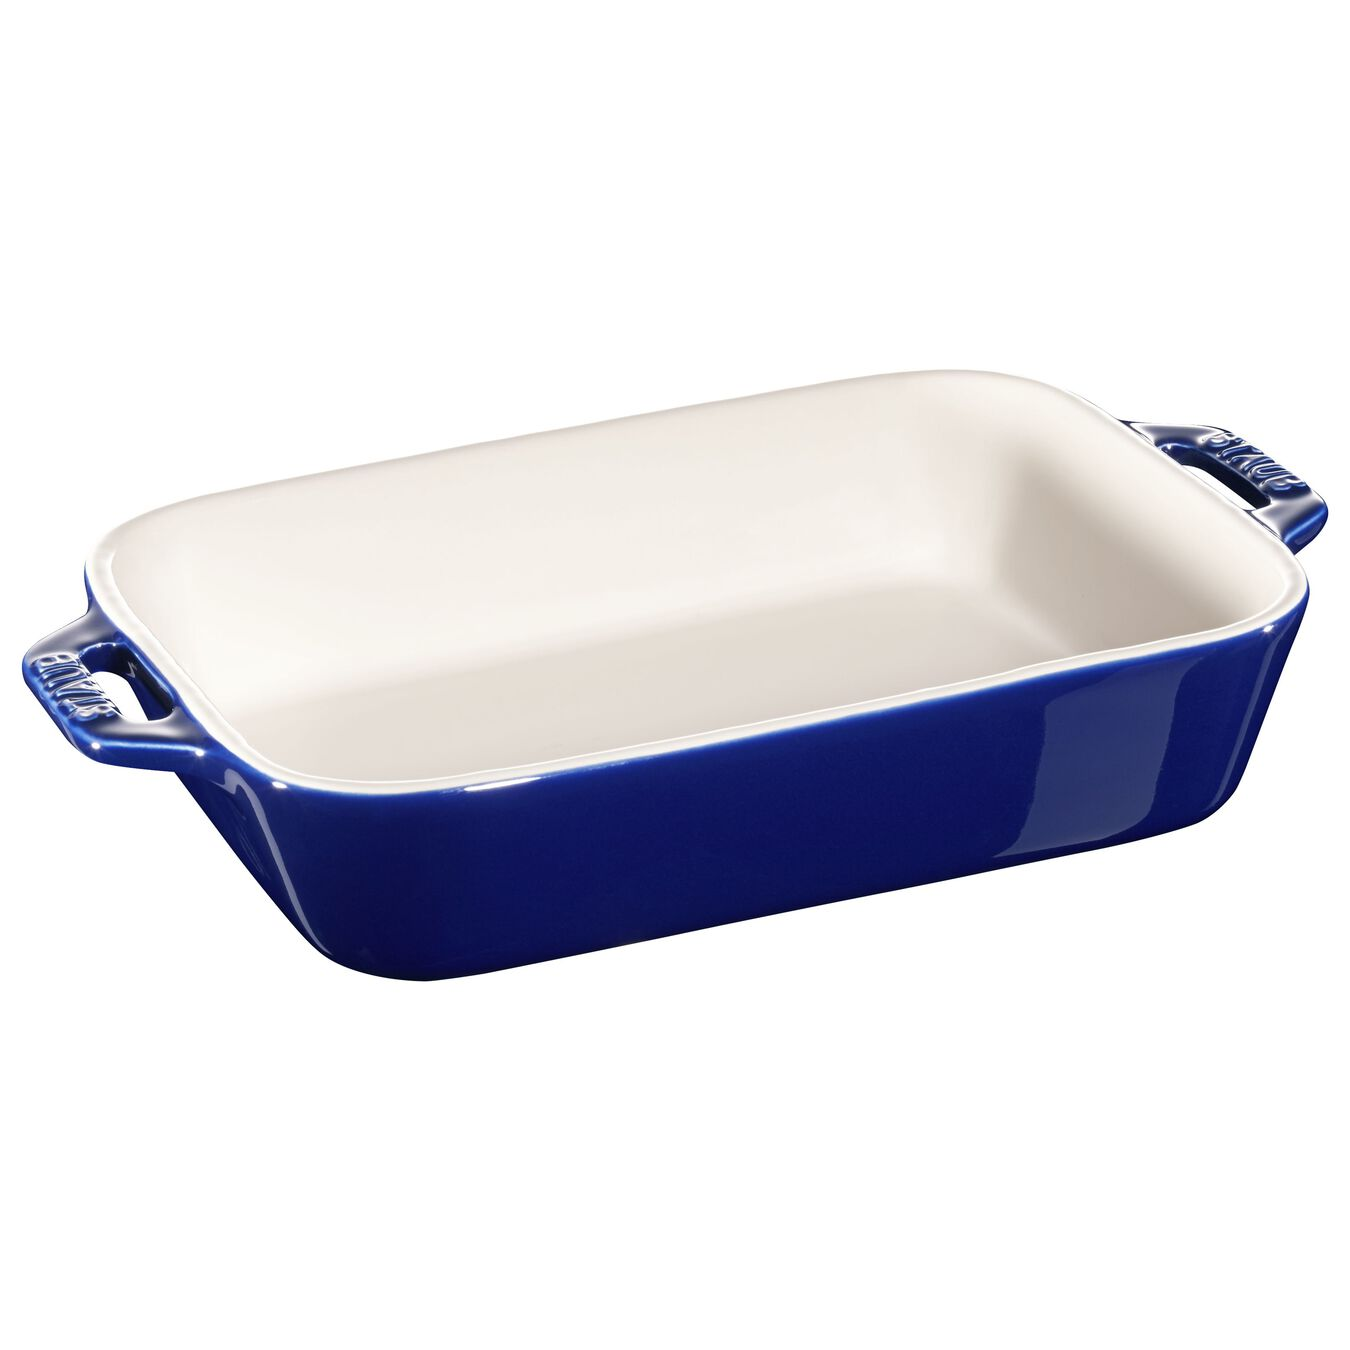 2-pc Rectangular Baking Dish Set - Dark Blue,,large 3